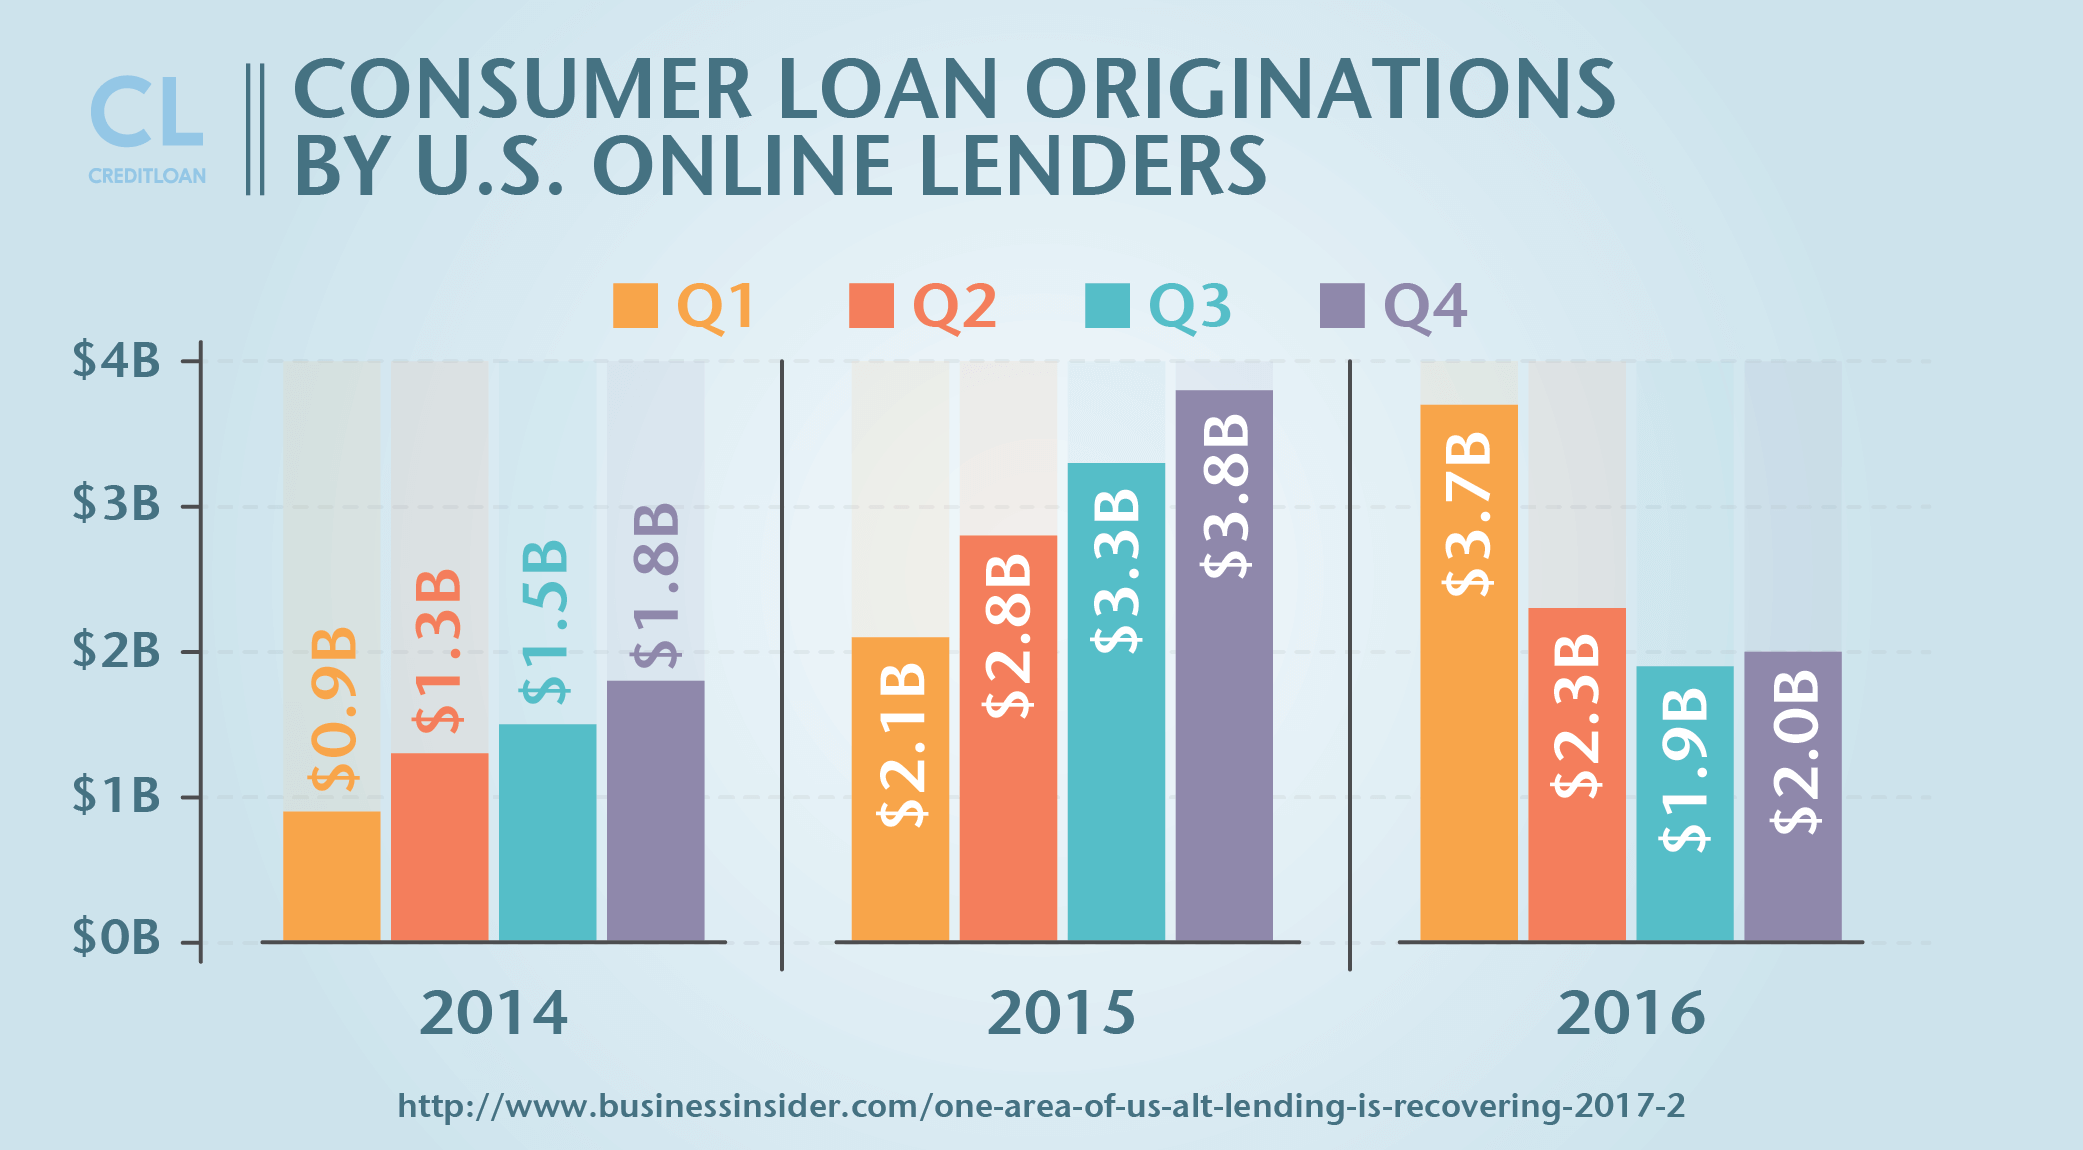 Consumer Loan Originations By U.S. Online Lenders from 2014-2016